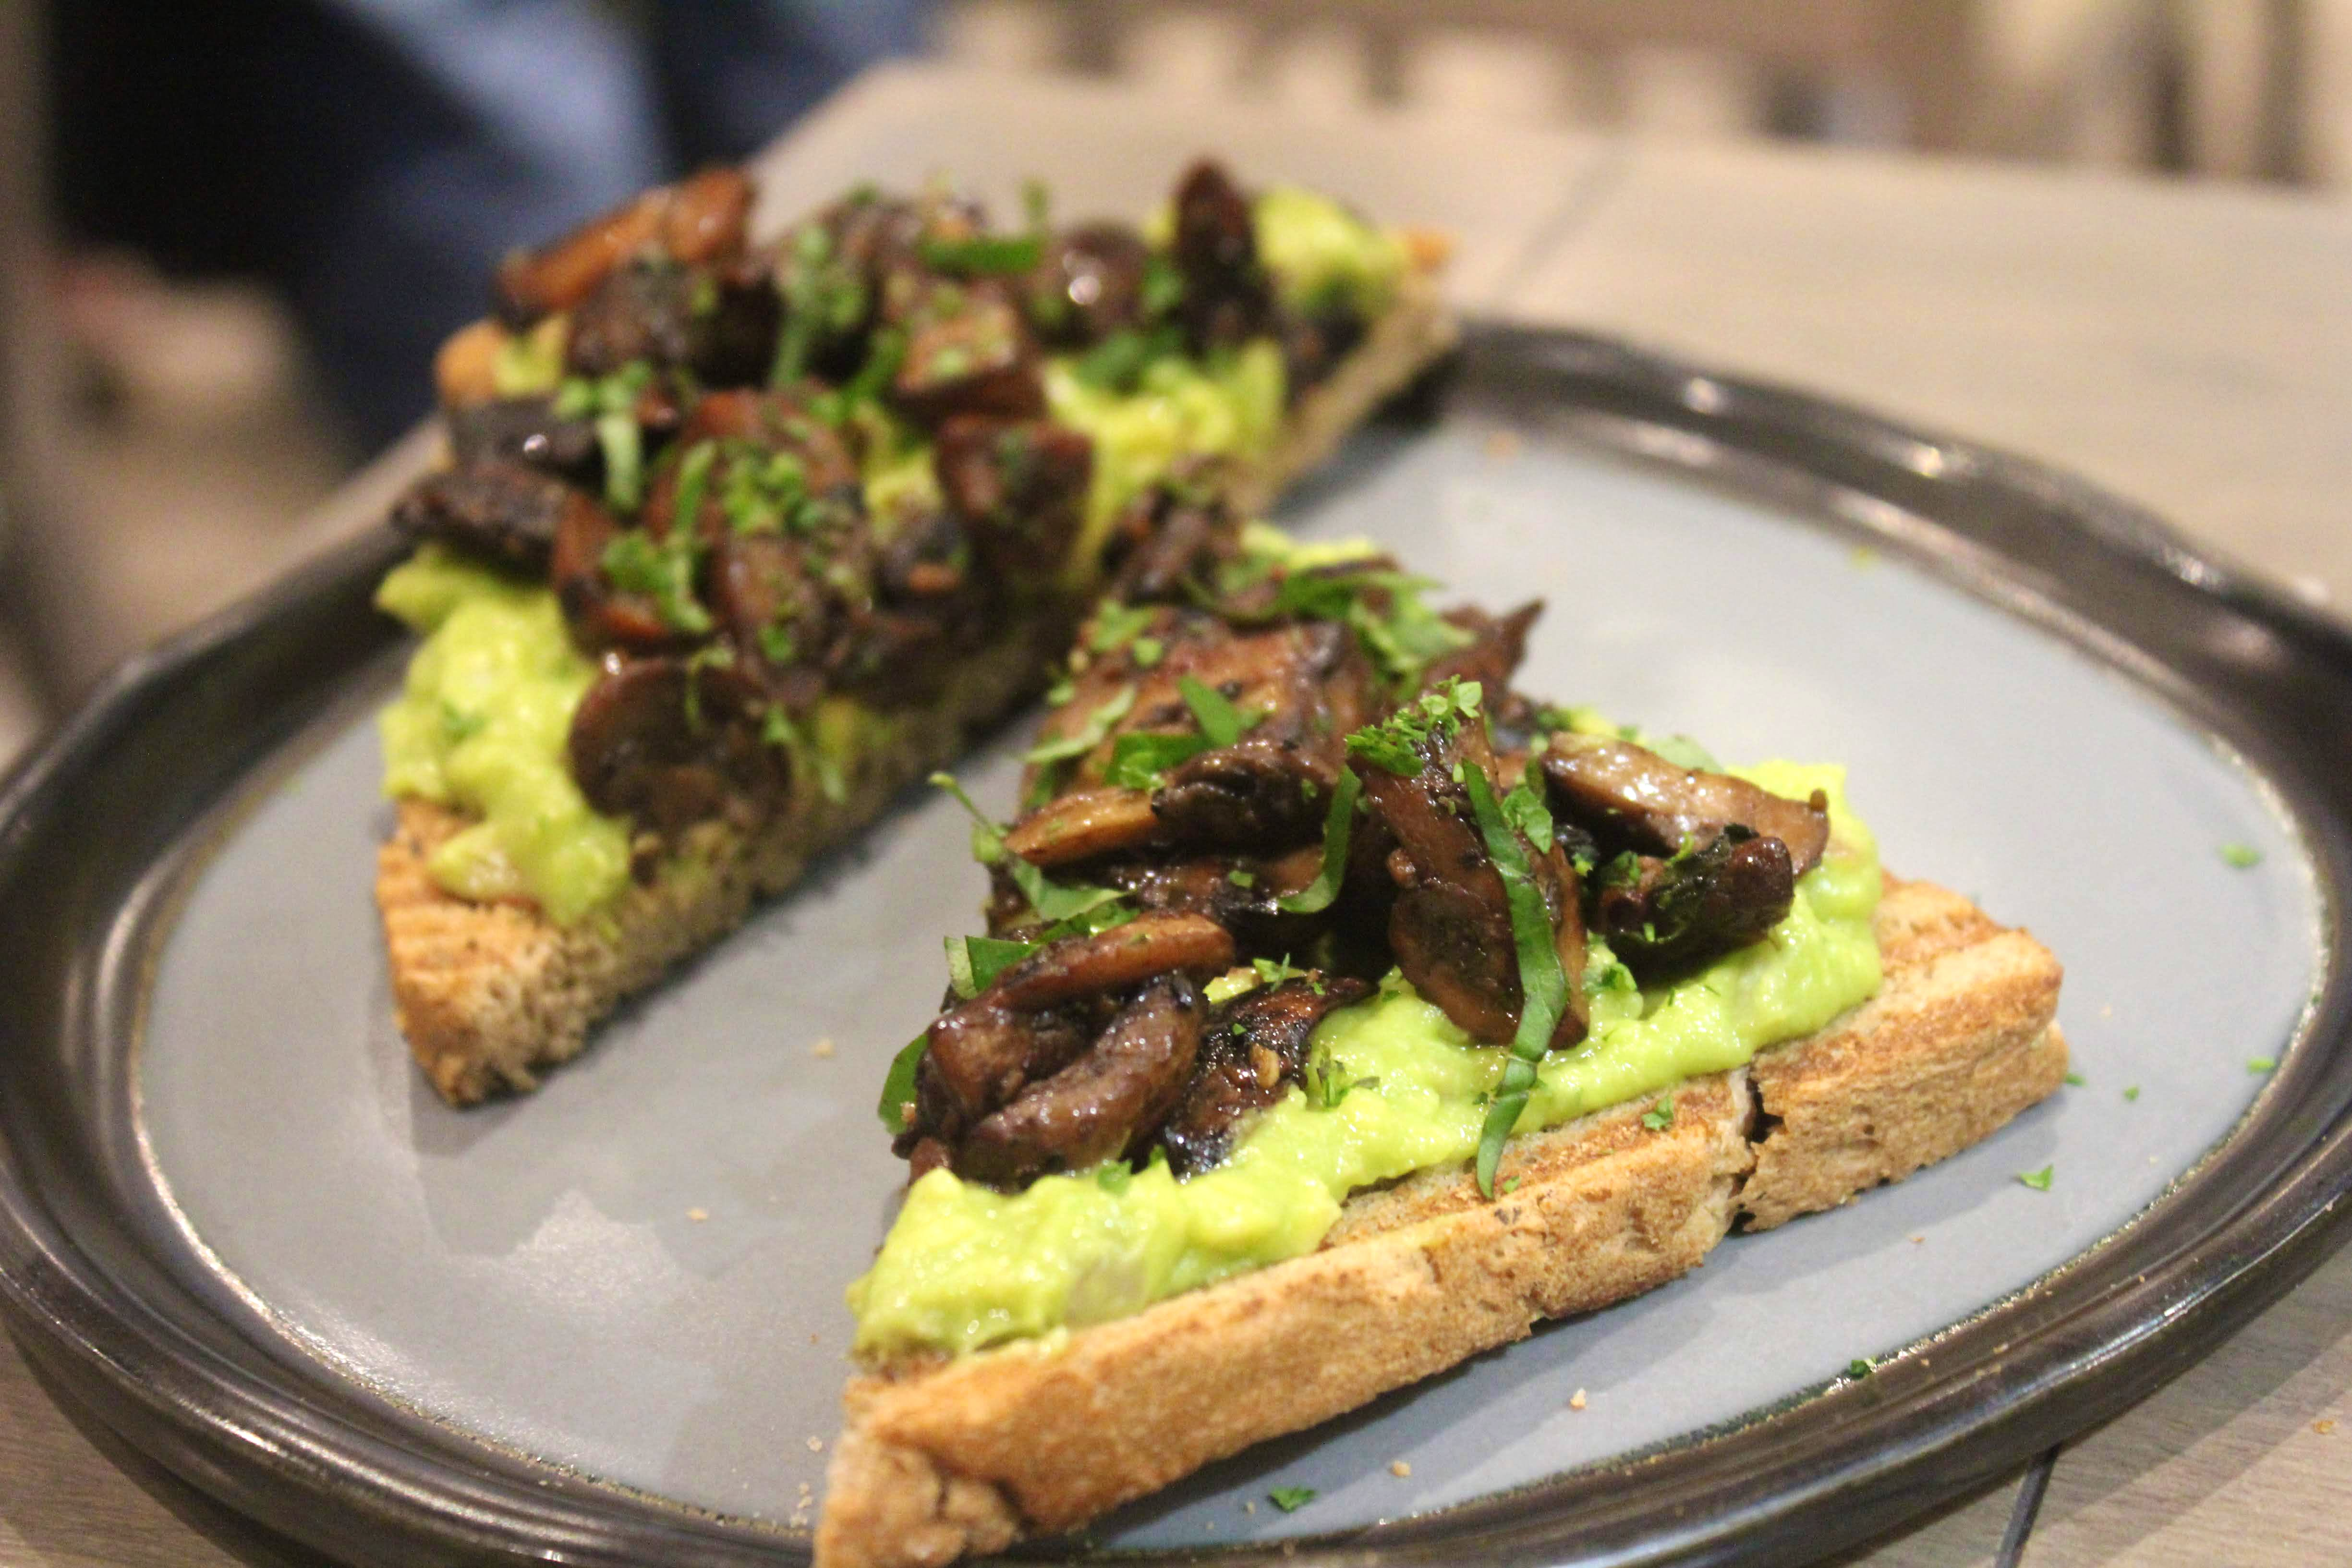 Seeds Of Life: Eat Good Feel Good, This Cute Healthy Cafe Now At Bandra